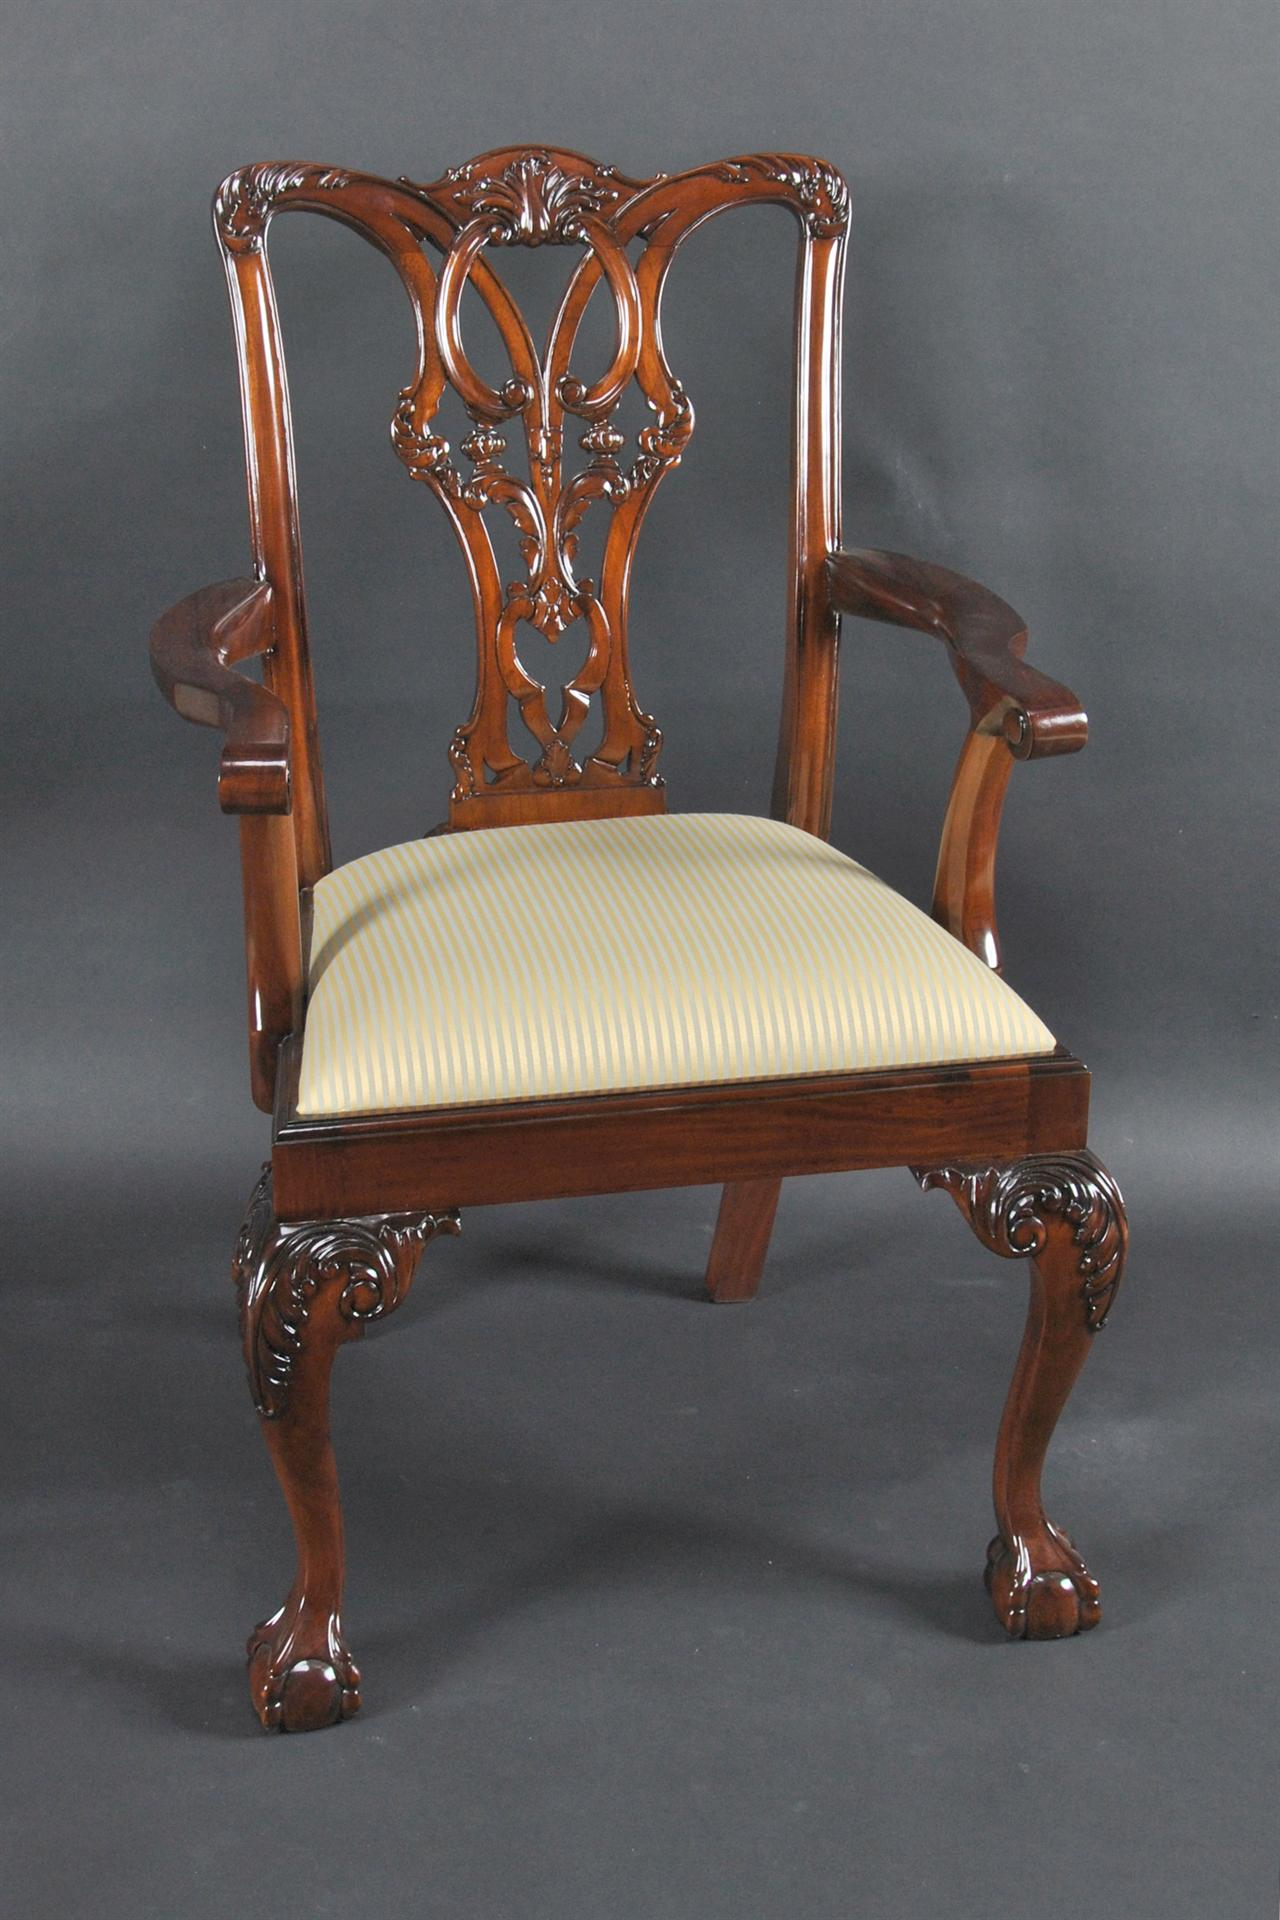 Mahogany Ball And Claw Chairs